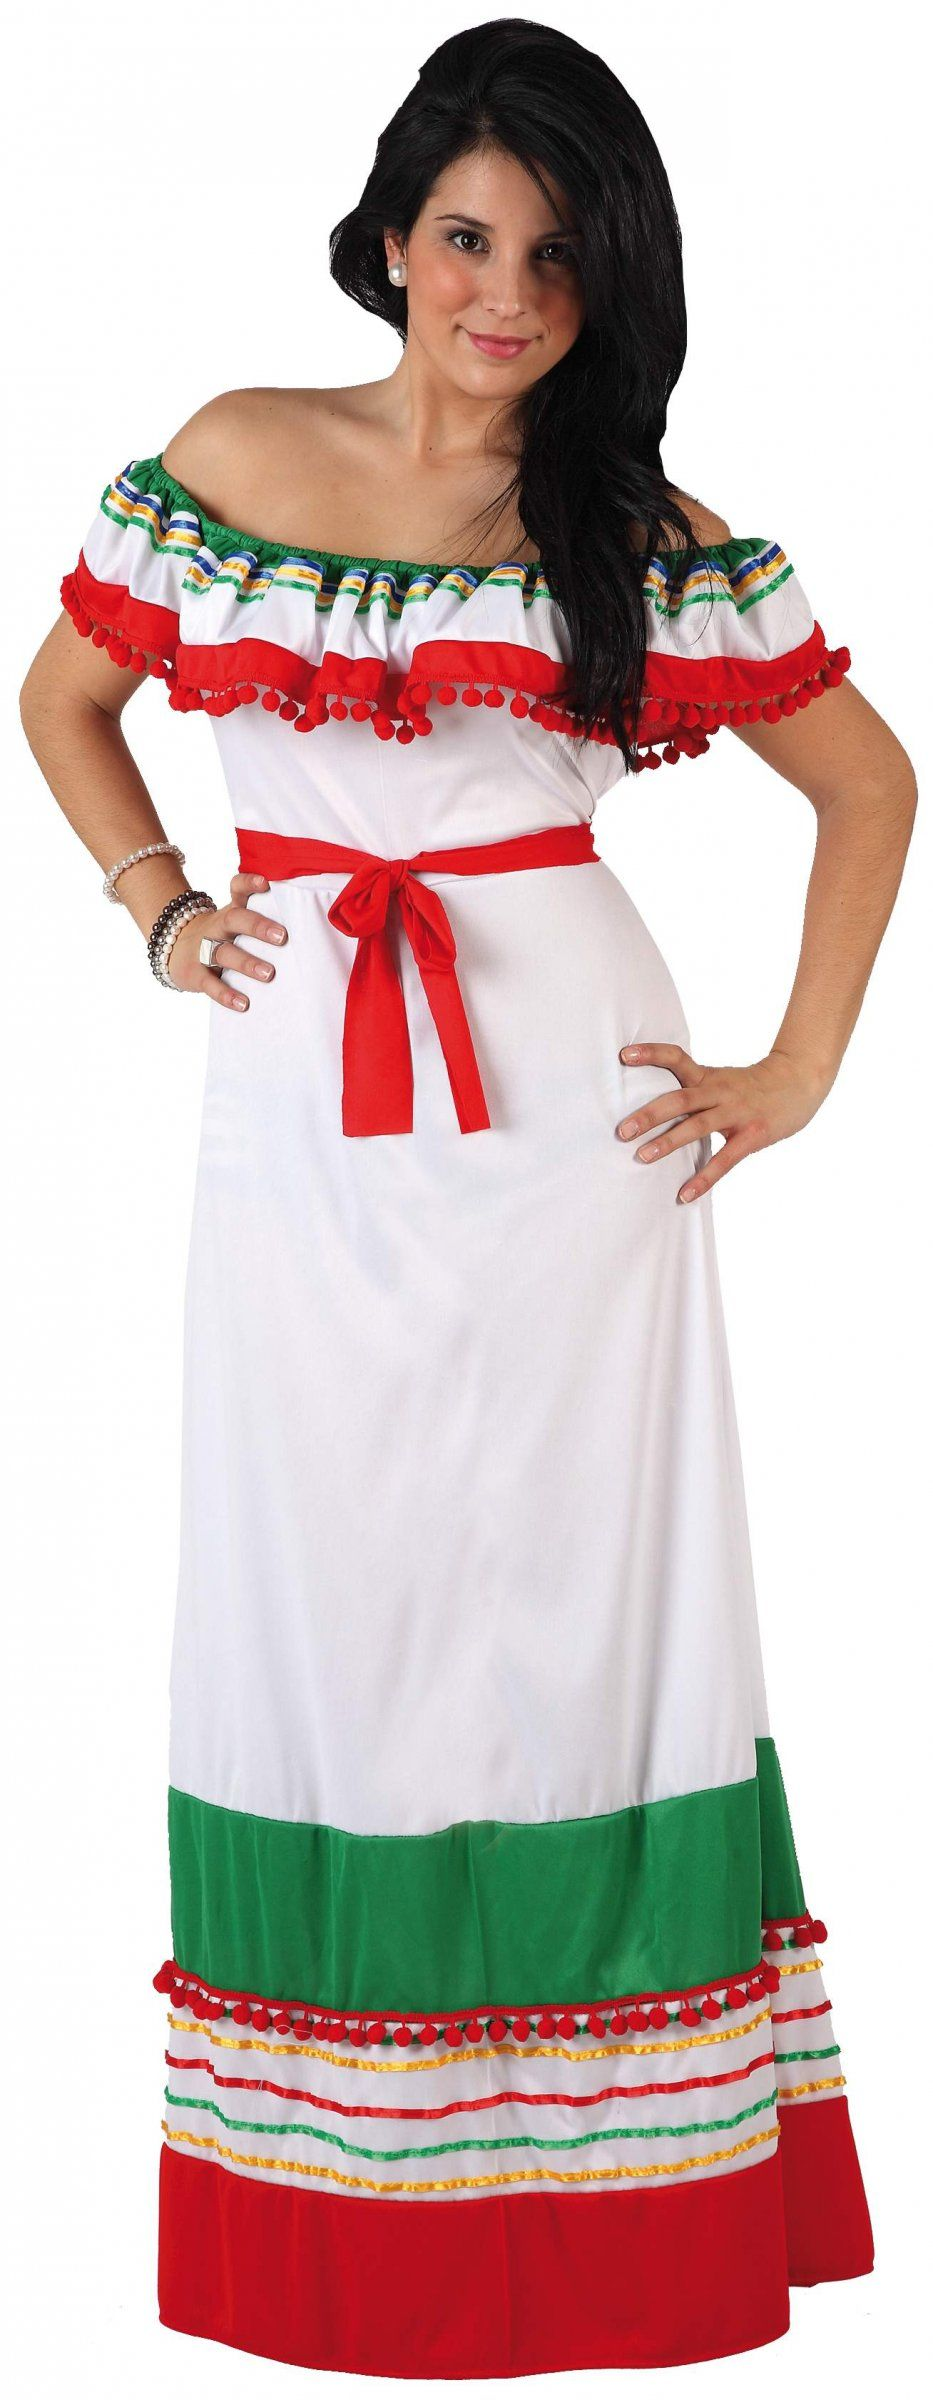 Costumes+women+mexican | Mexican costume for woman | Costumes | Pinterest | Mexican costume ...